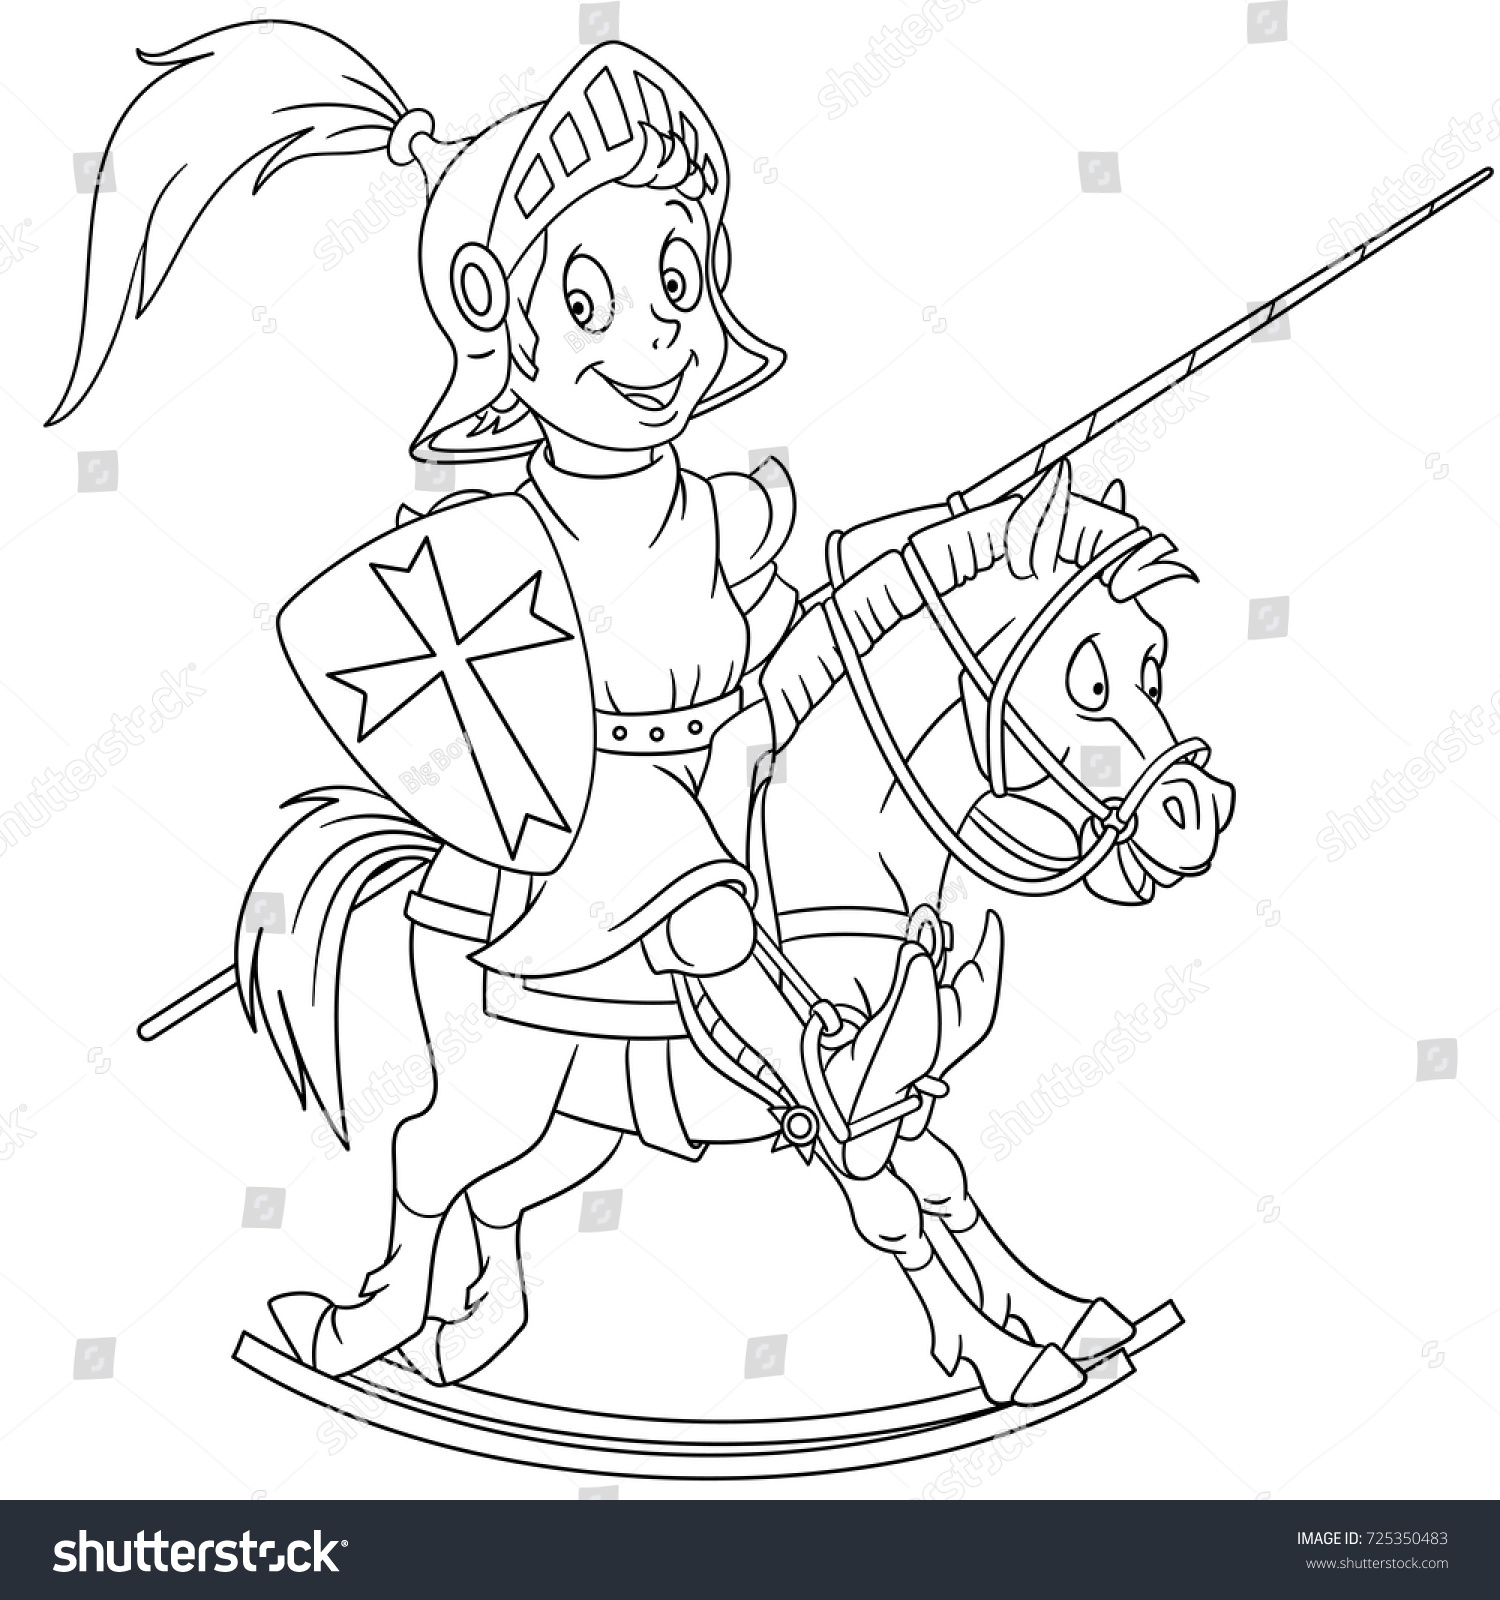 Coloring Page Cartoon Medieval Knight Riding Stock Vector 725350483 ...